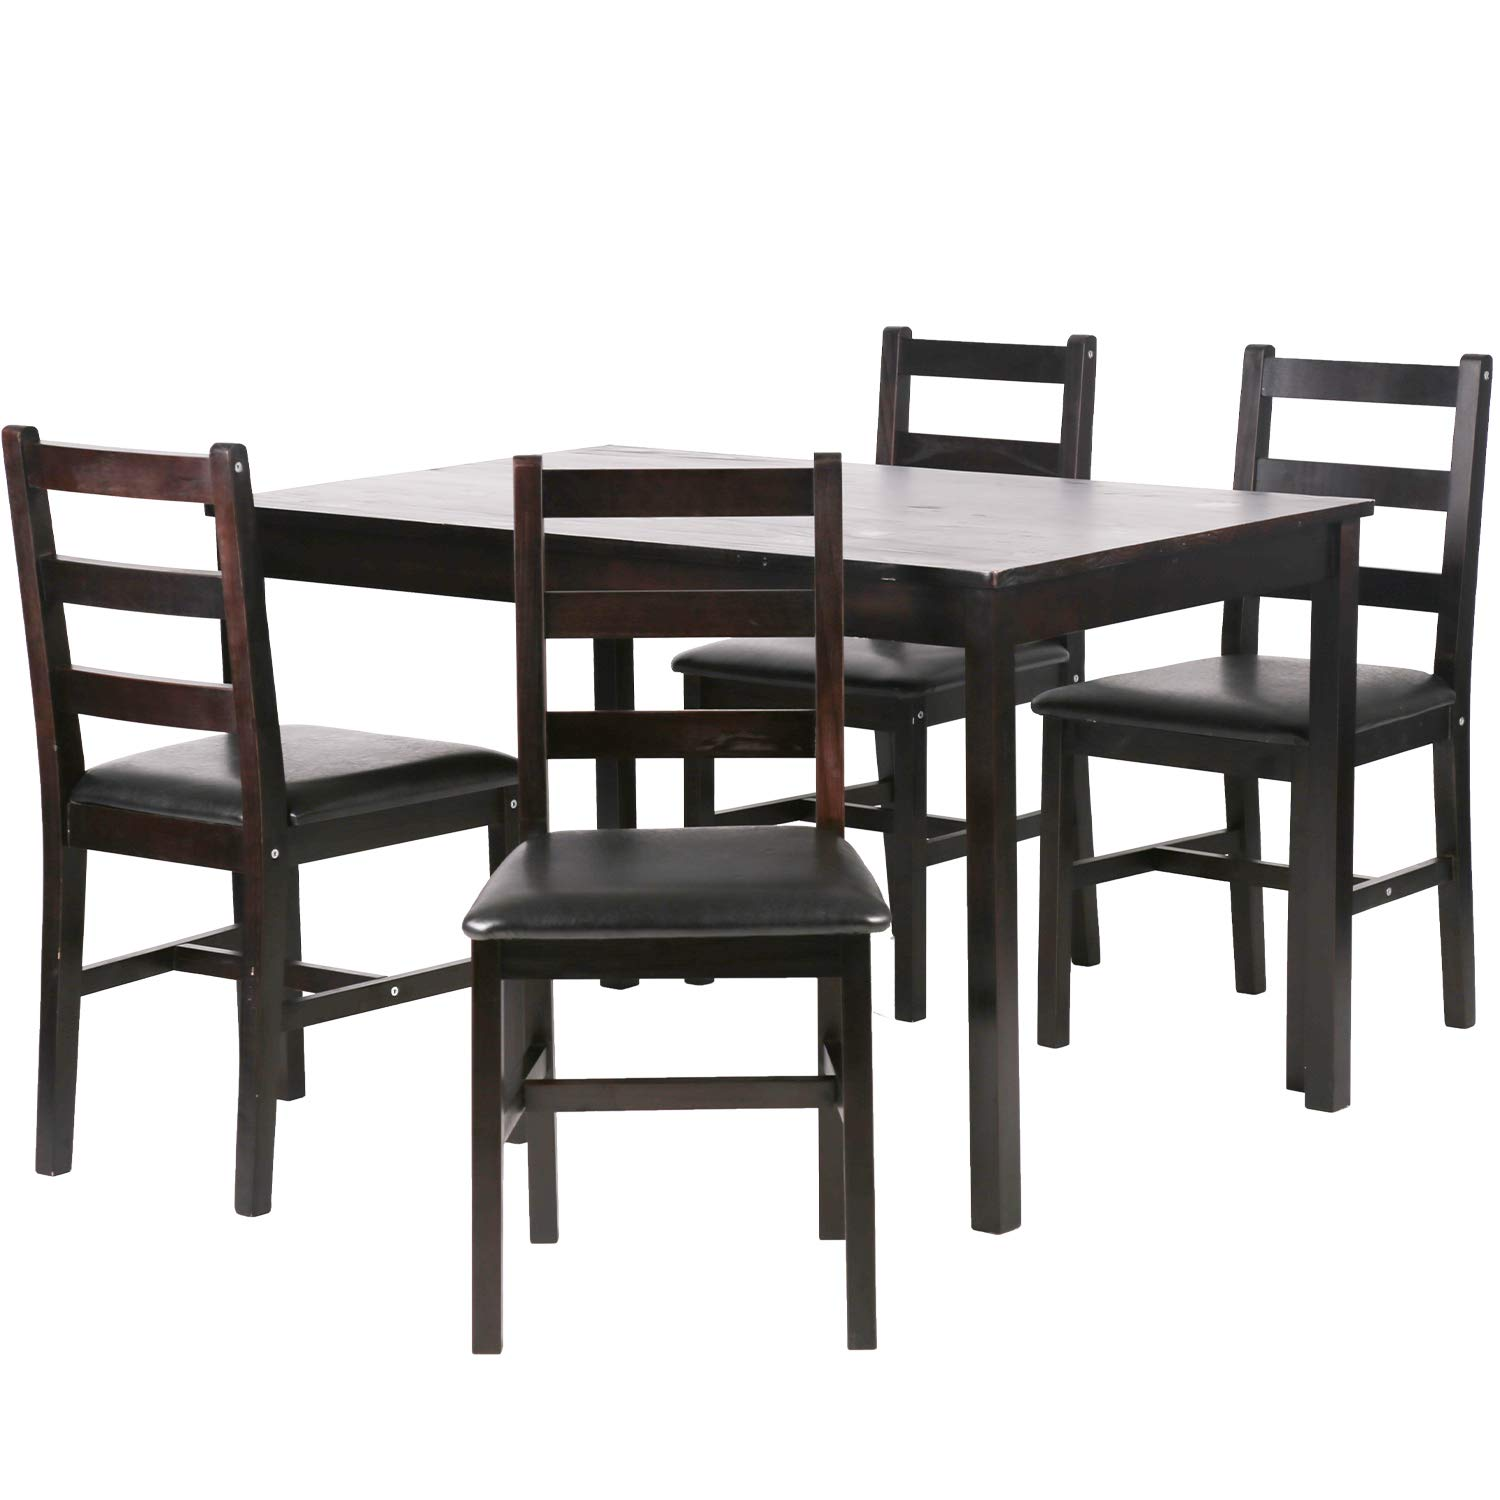 FDW Dining Table Set Kitchen Dining Table Set Wood Table and Chairs Set Kitchen Table and Chairs for 4 Person,Brown by FDW